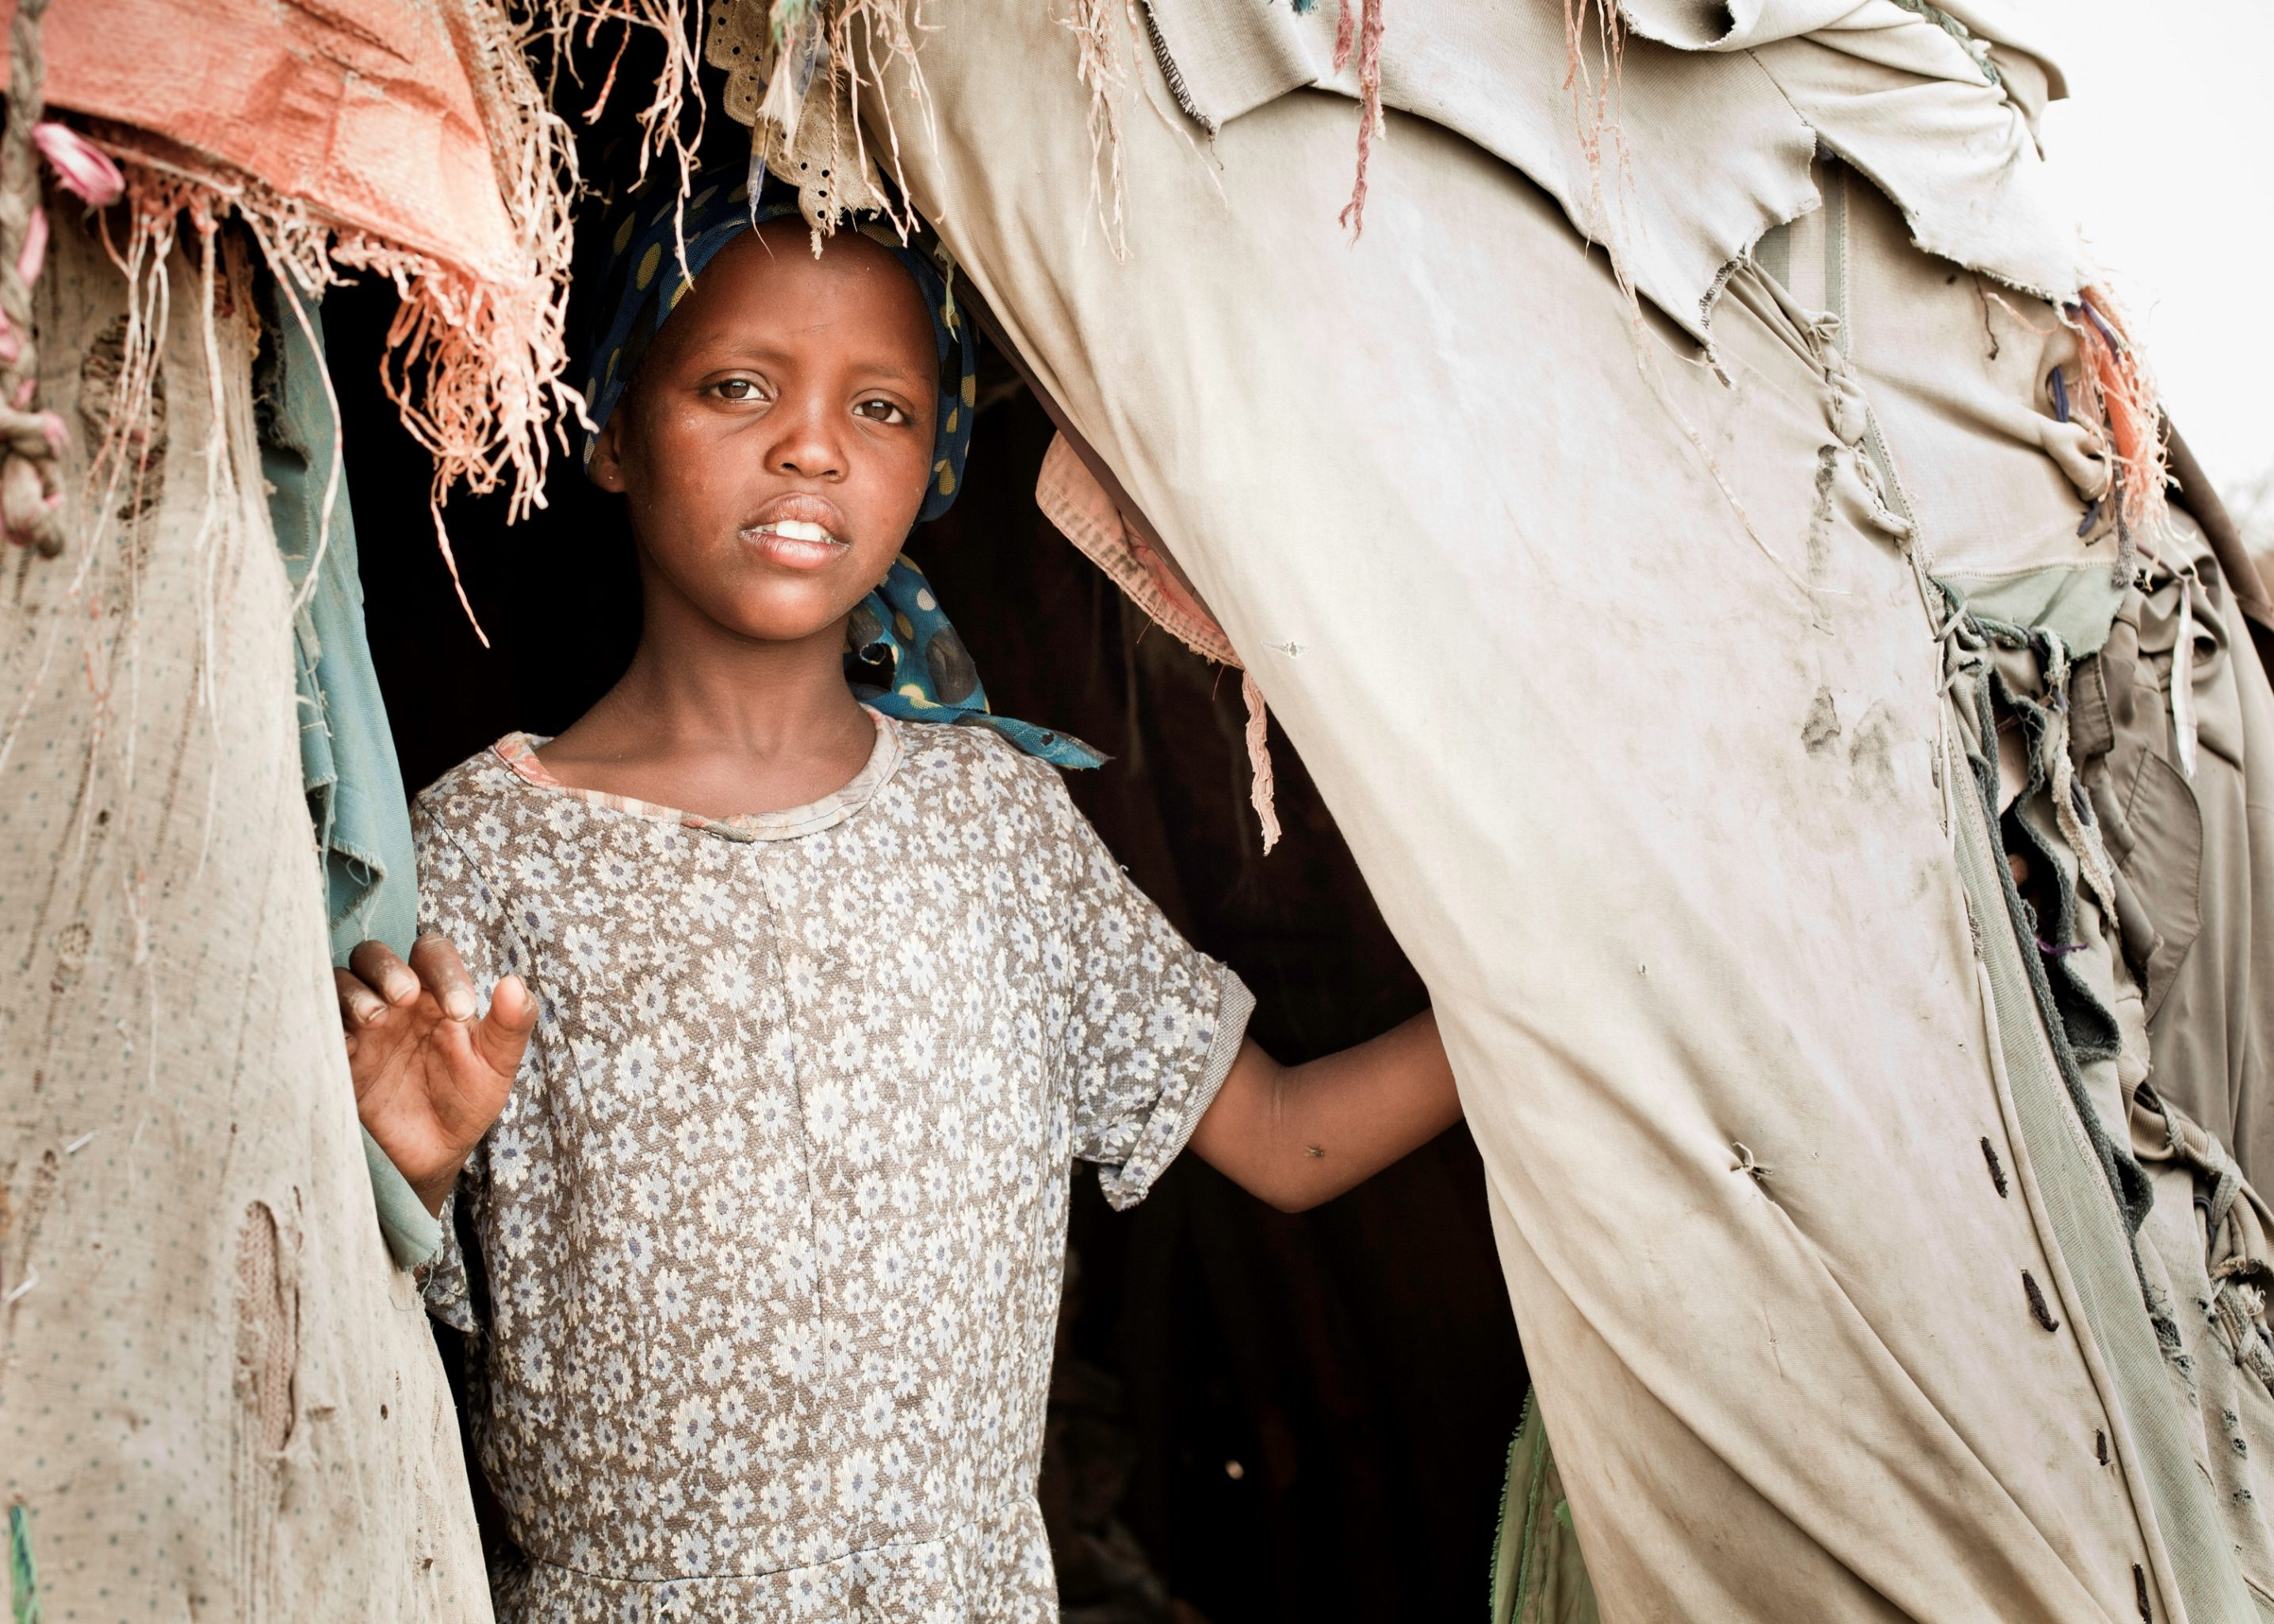 Young Somali Girl Looks At The Camera Through The Open Flap Of Her Cloth Hut.